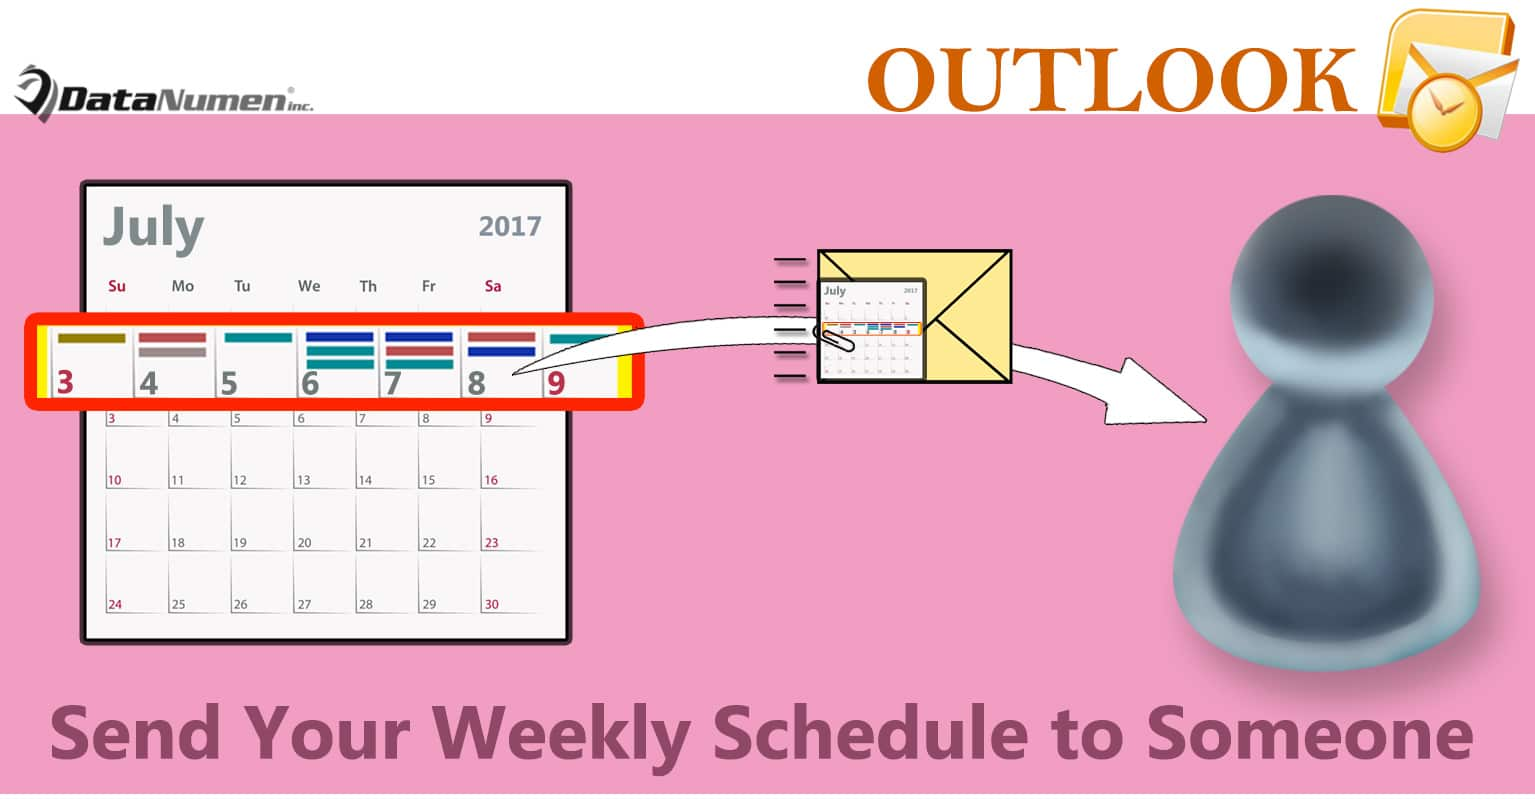 How to Auto Send Your Weekly Schedule to Someone Else via an